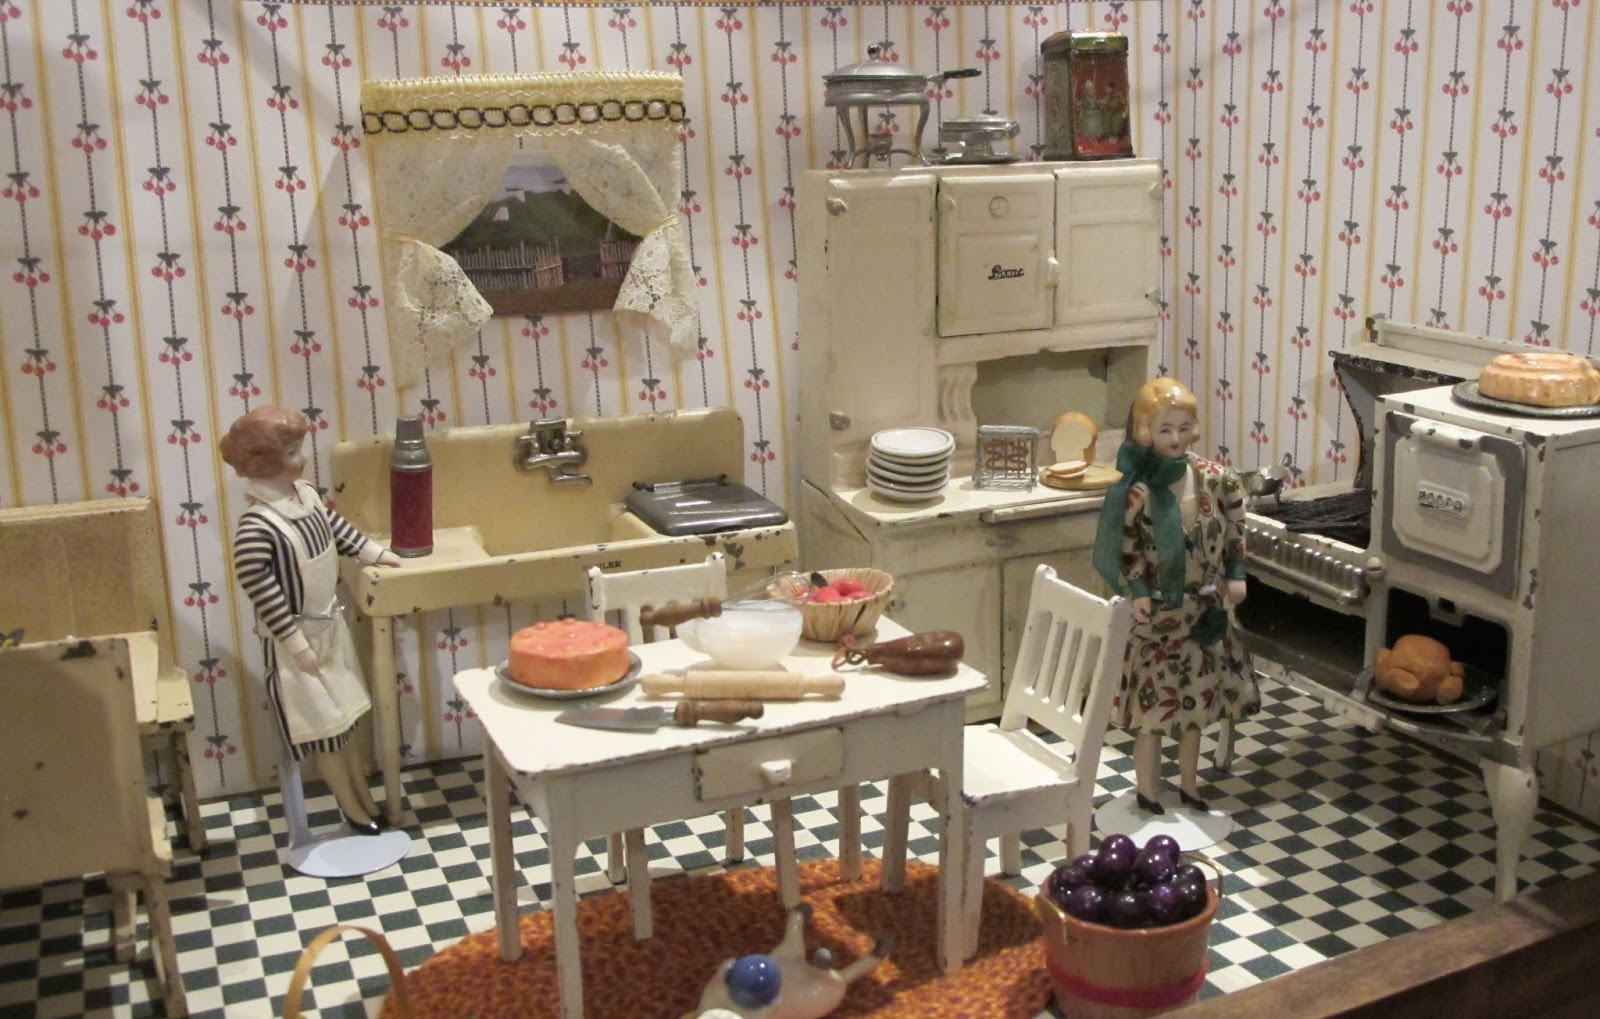 arcade toys for the dollhouse a 1920s kitchen - 1920s Kitchen